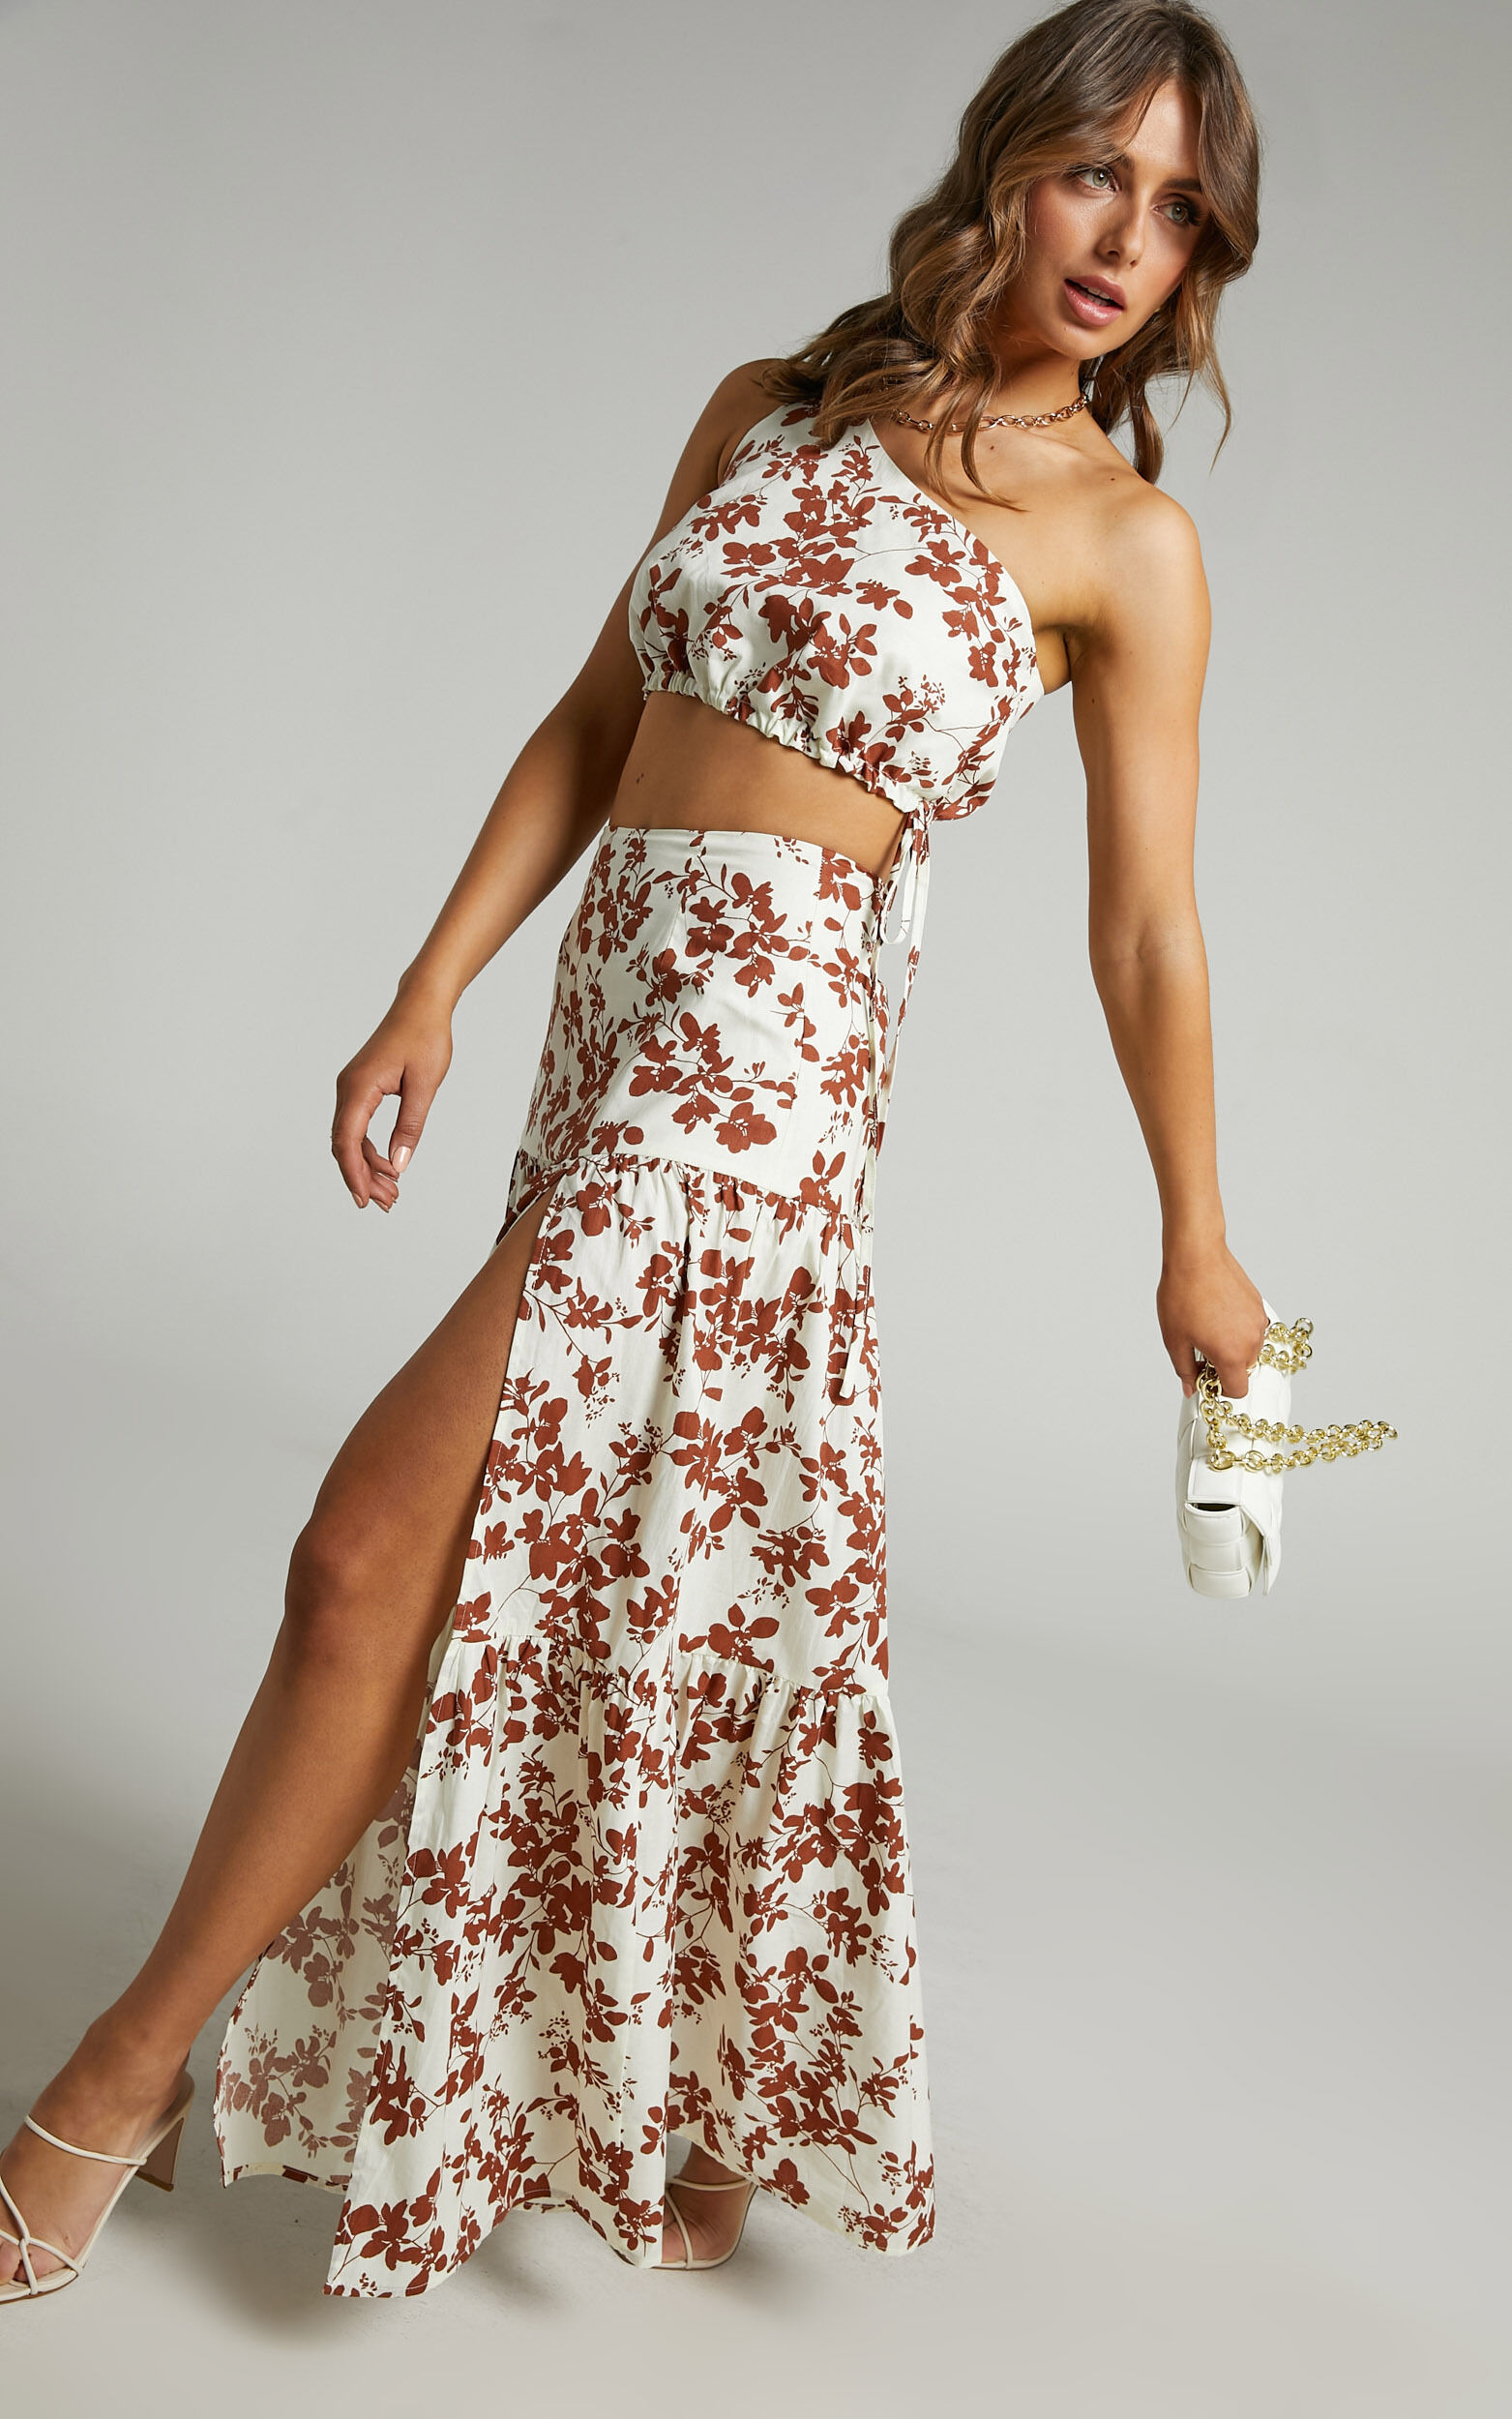 Meghan One Shoulder Two Piece Set with Maxi Skirt in Shadow Floral - 04, BRN2, super-hi-res image number null